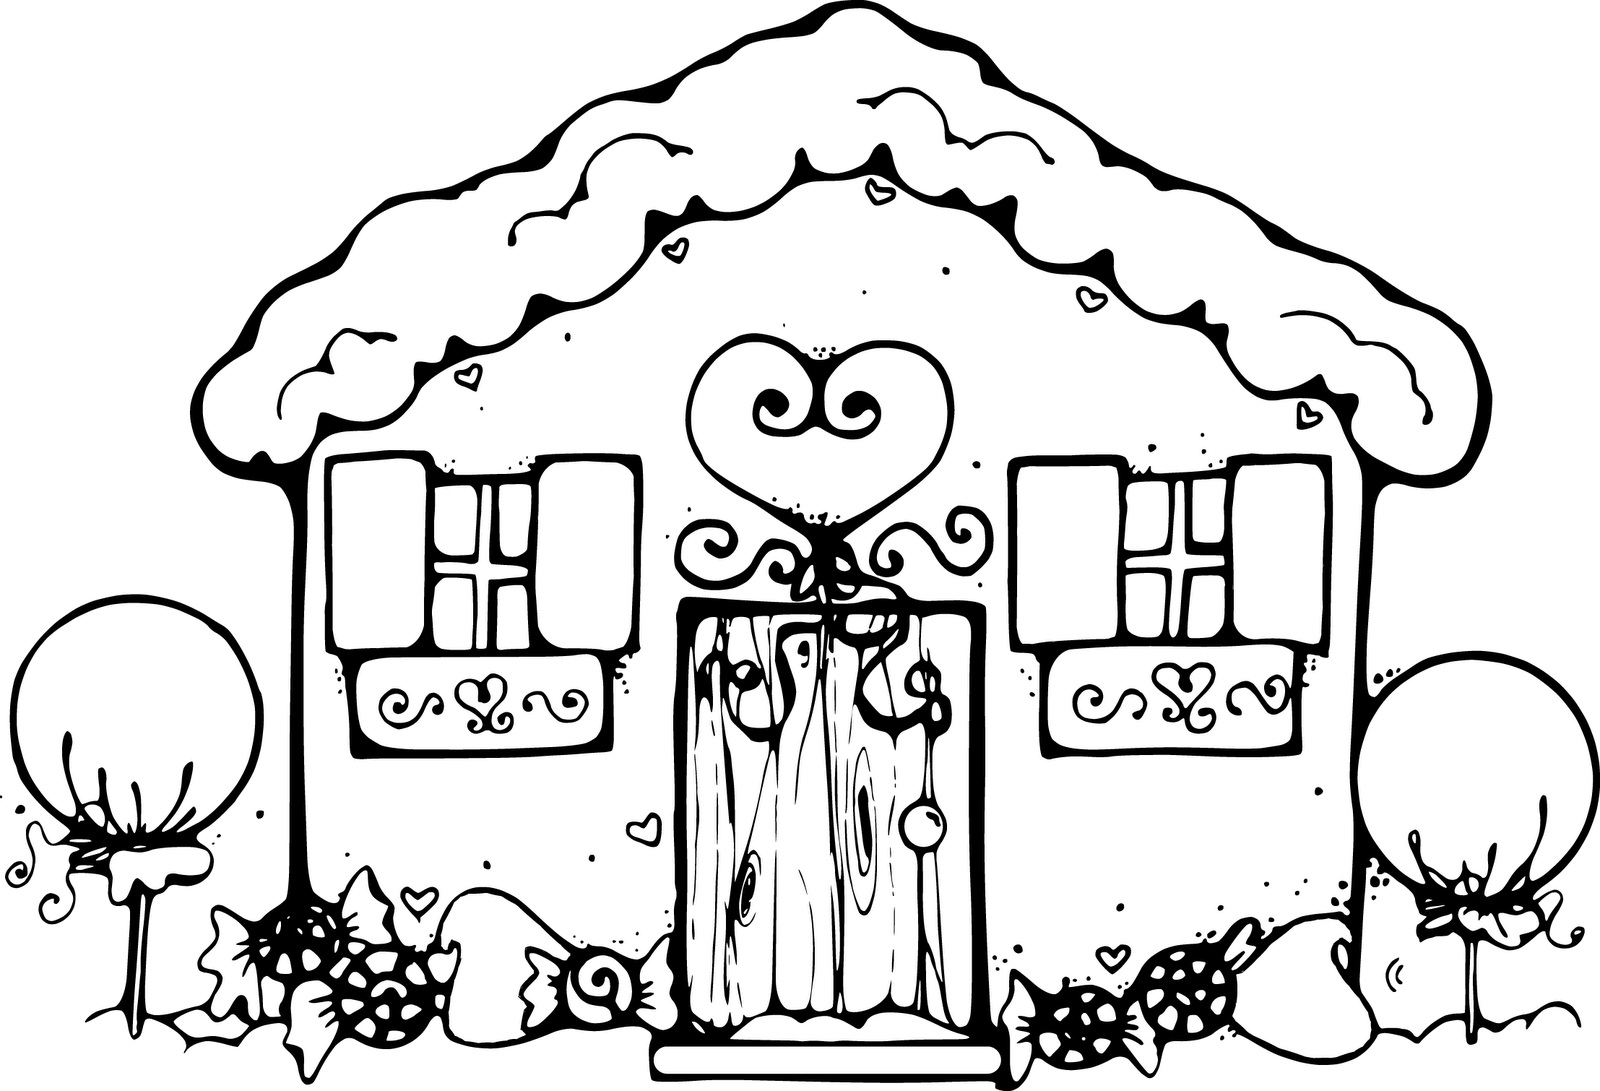 gingerbread house coloring pages for kids - Colouring Pages For Kids